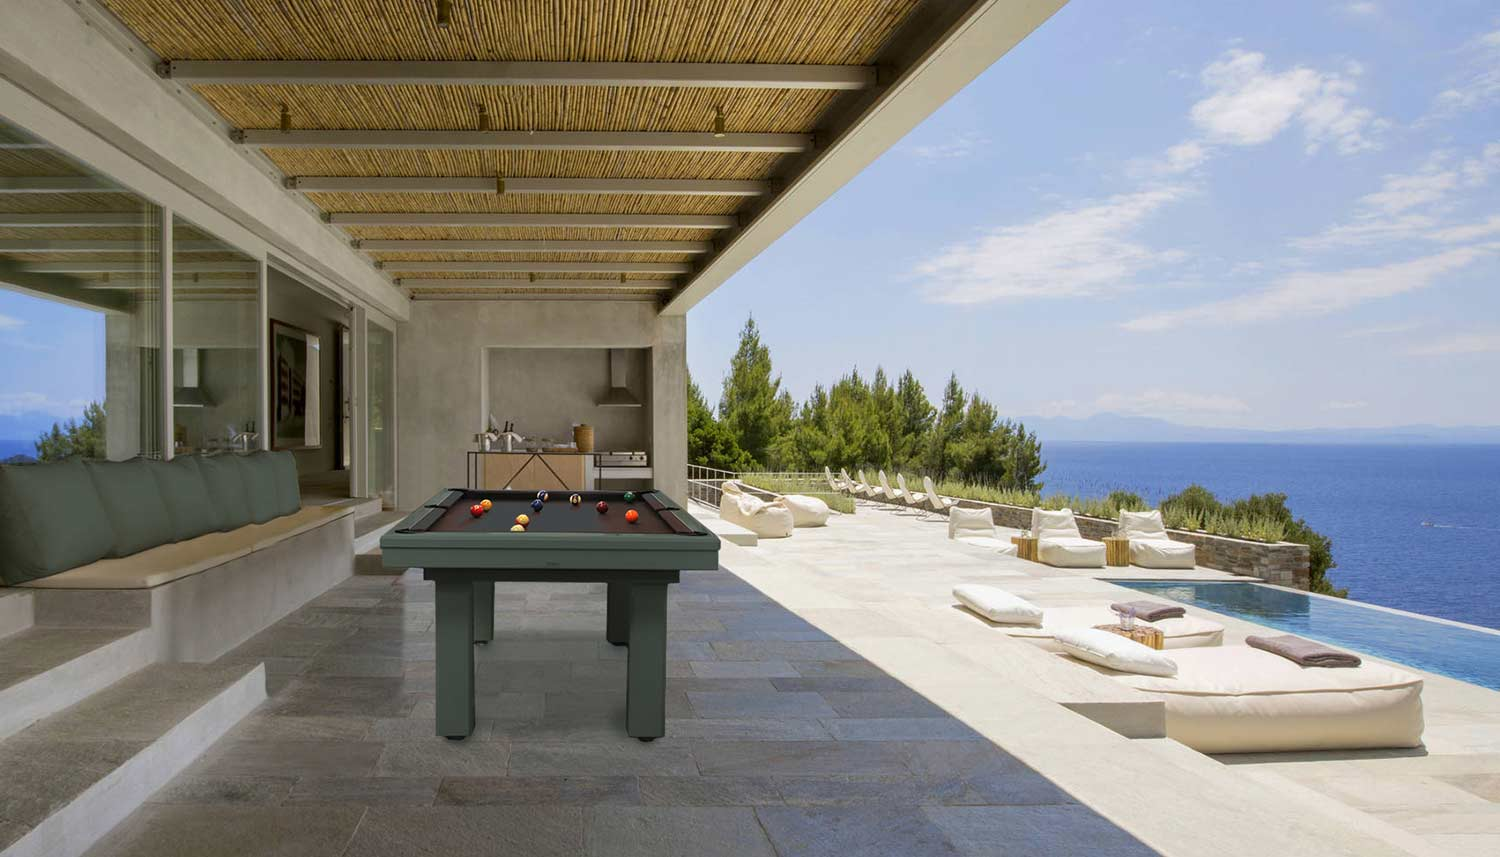 billard-toulet-billards-outdoor-billard-freijo